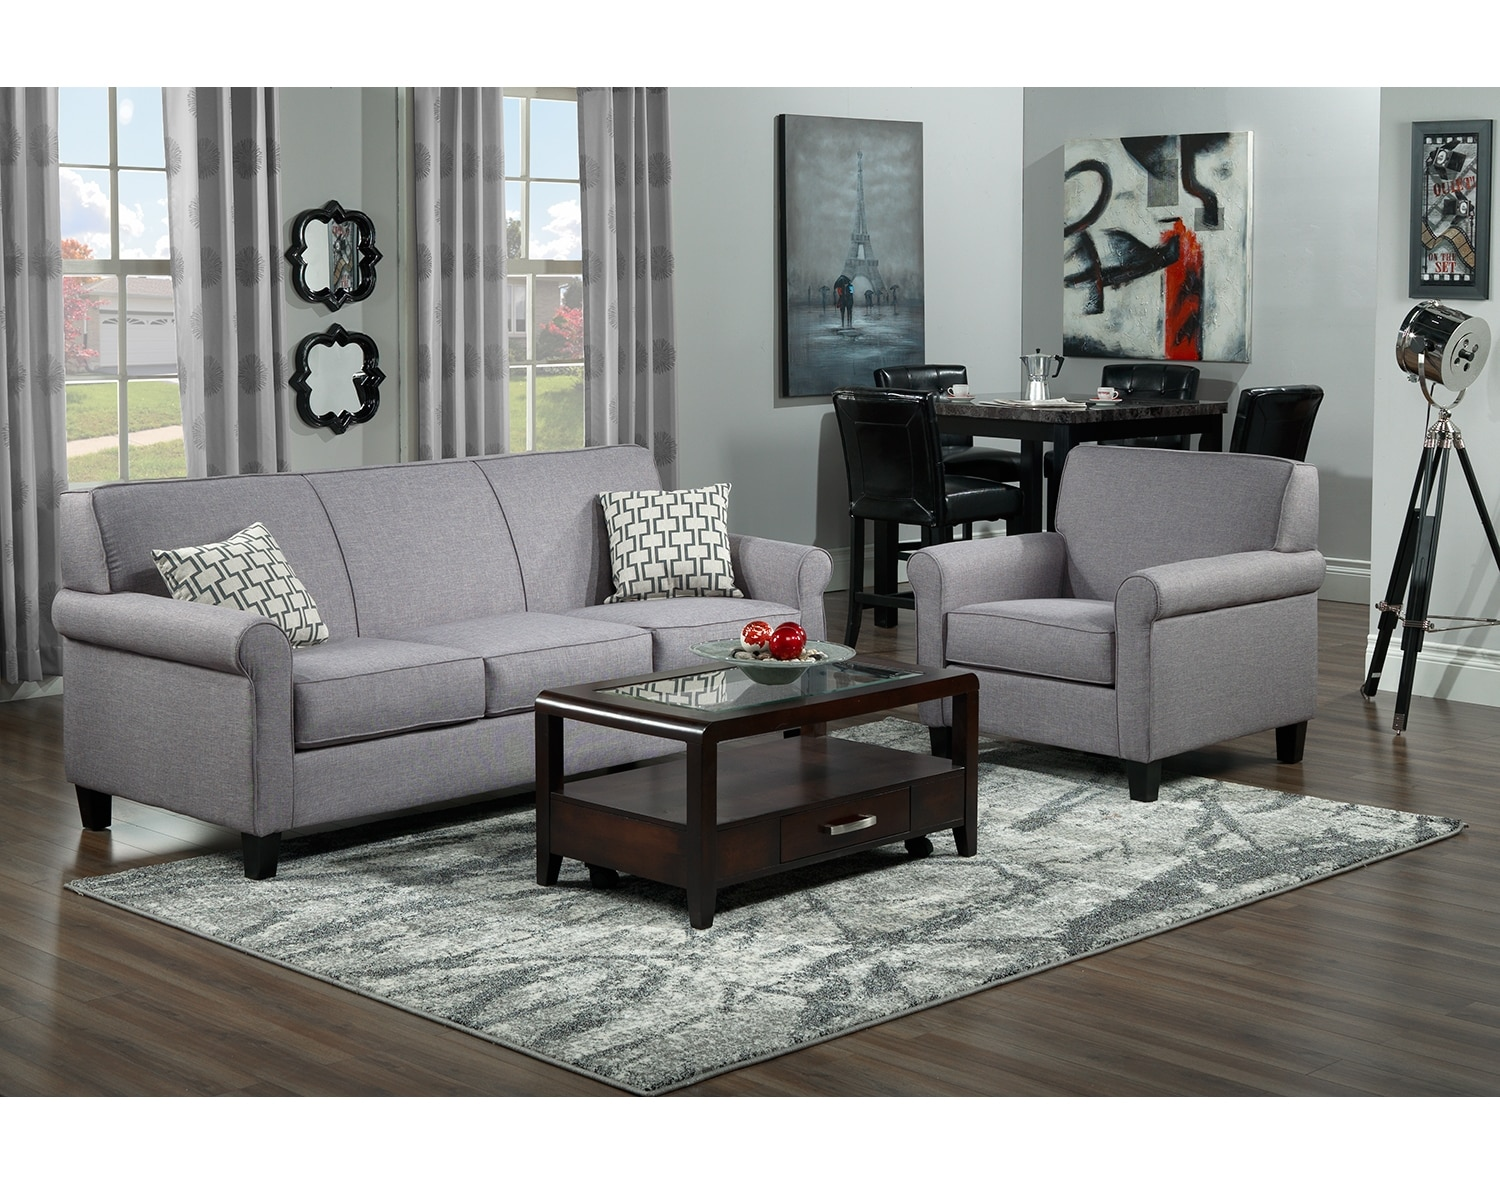 Furniture Shops Richmond Richmond Sofa Silver Grey Furniture Ca